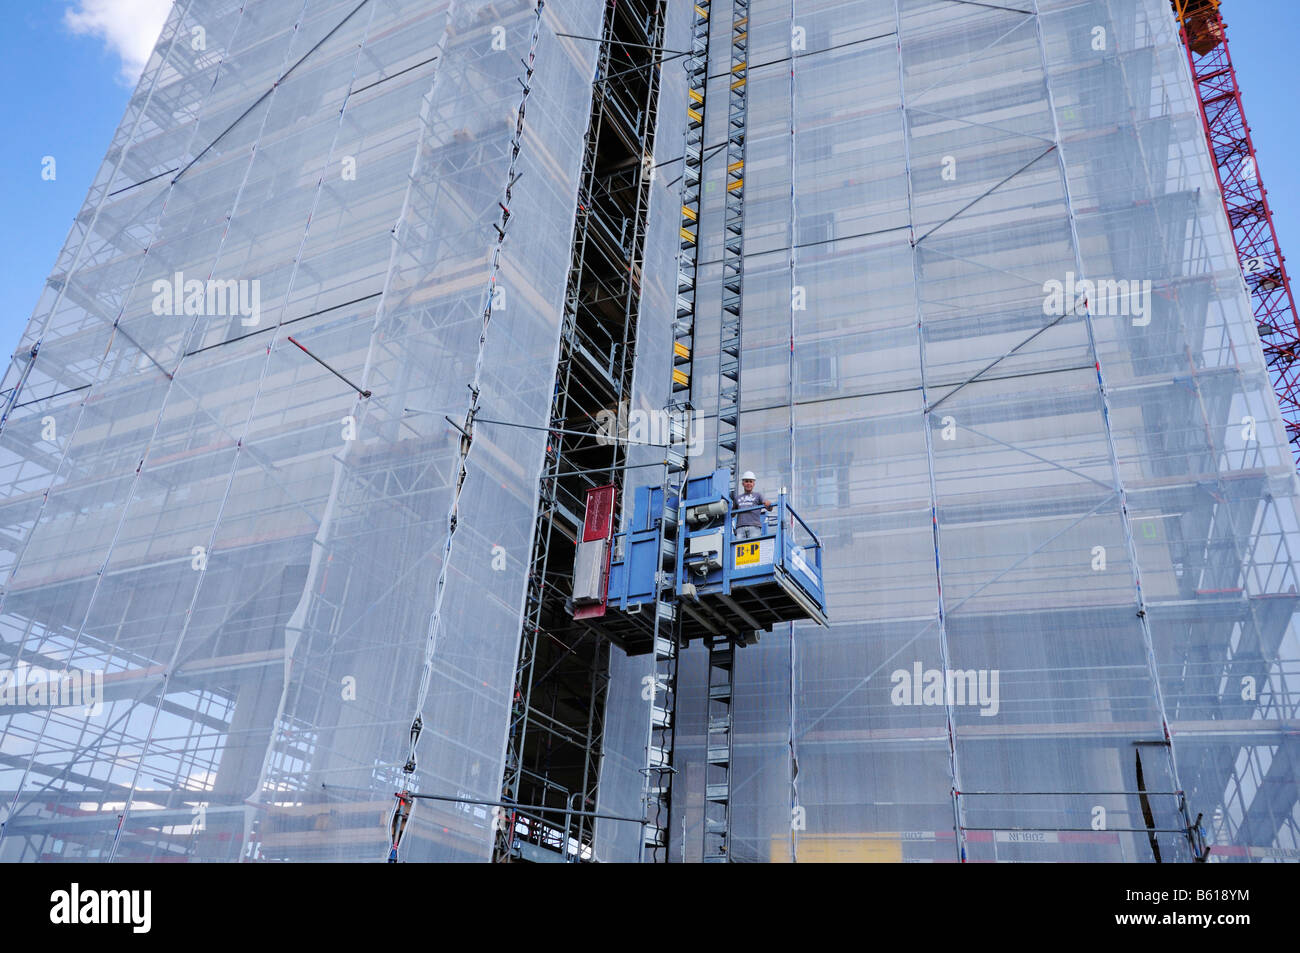 Lift on a construction site, scaffolded World Conference Center in Bonn, North Rhine-Westphalia - Stock Image